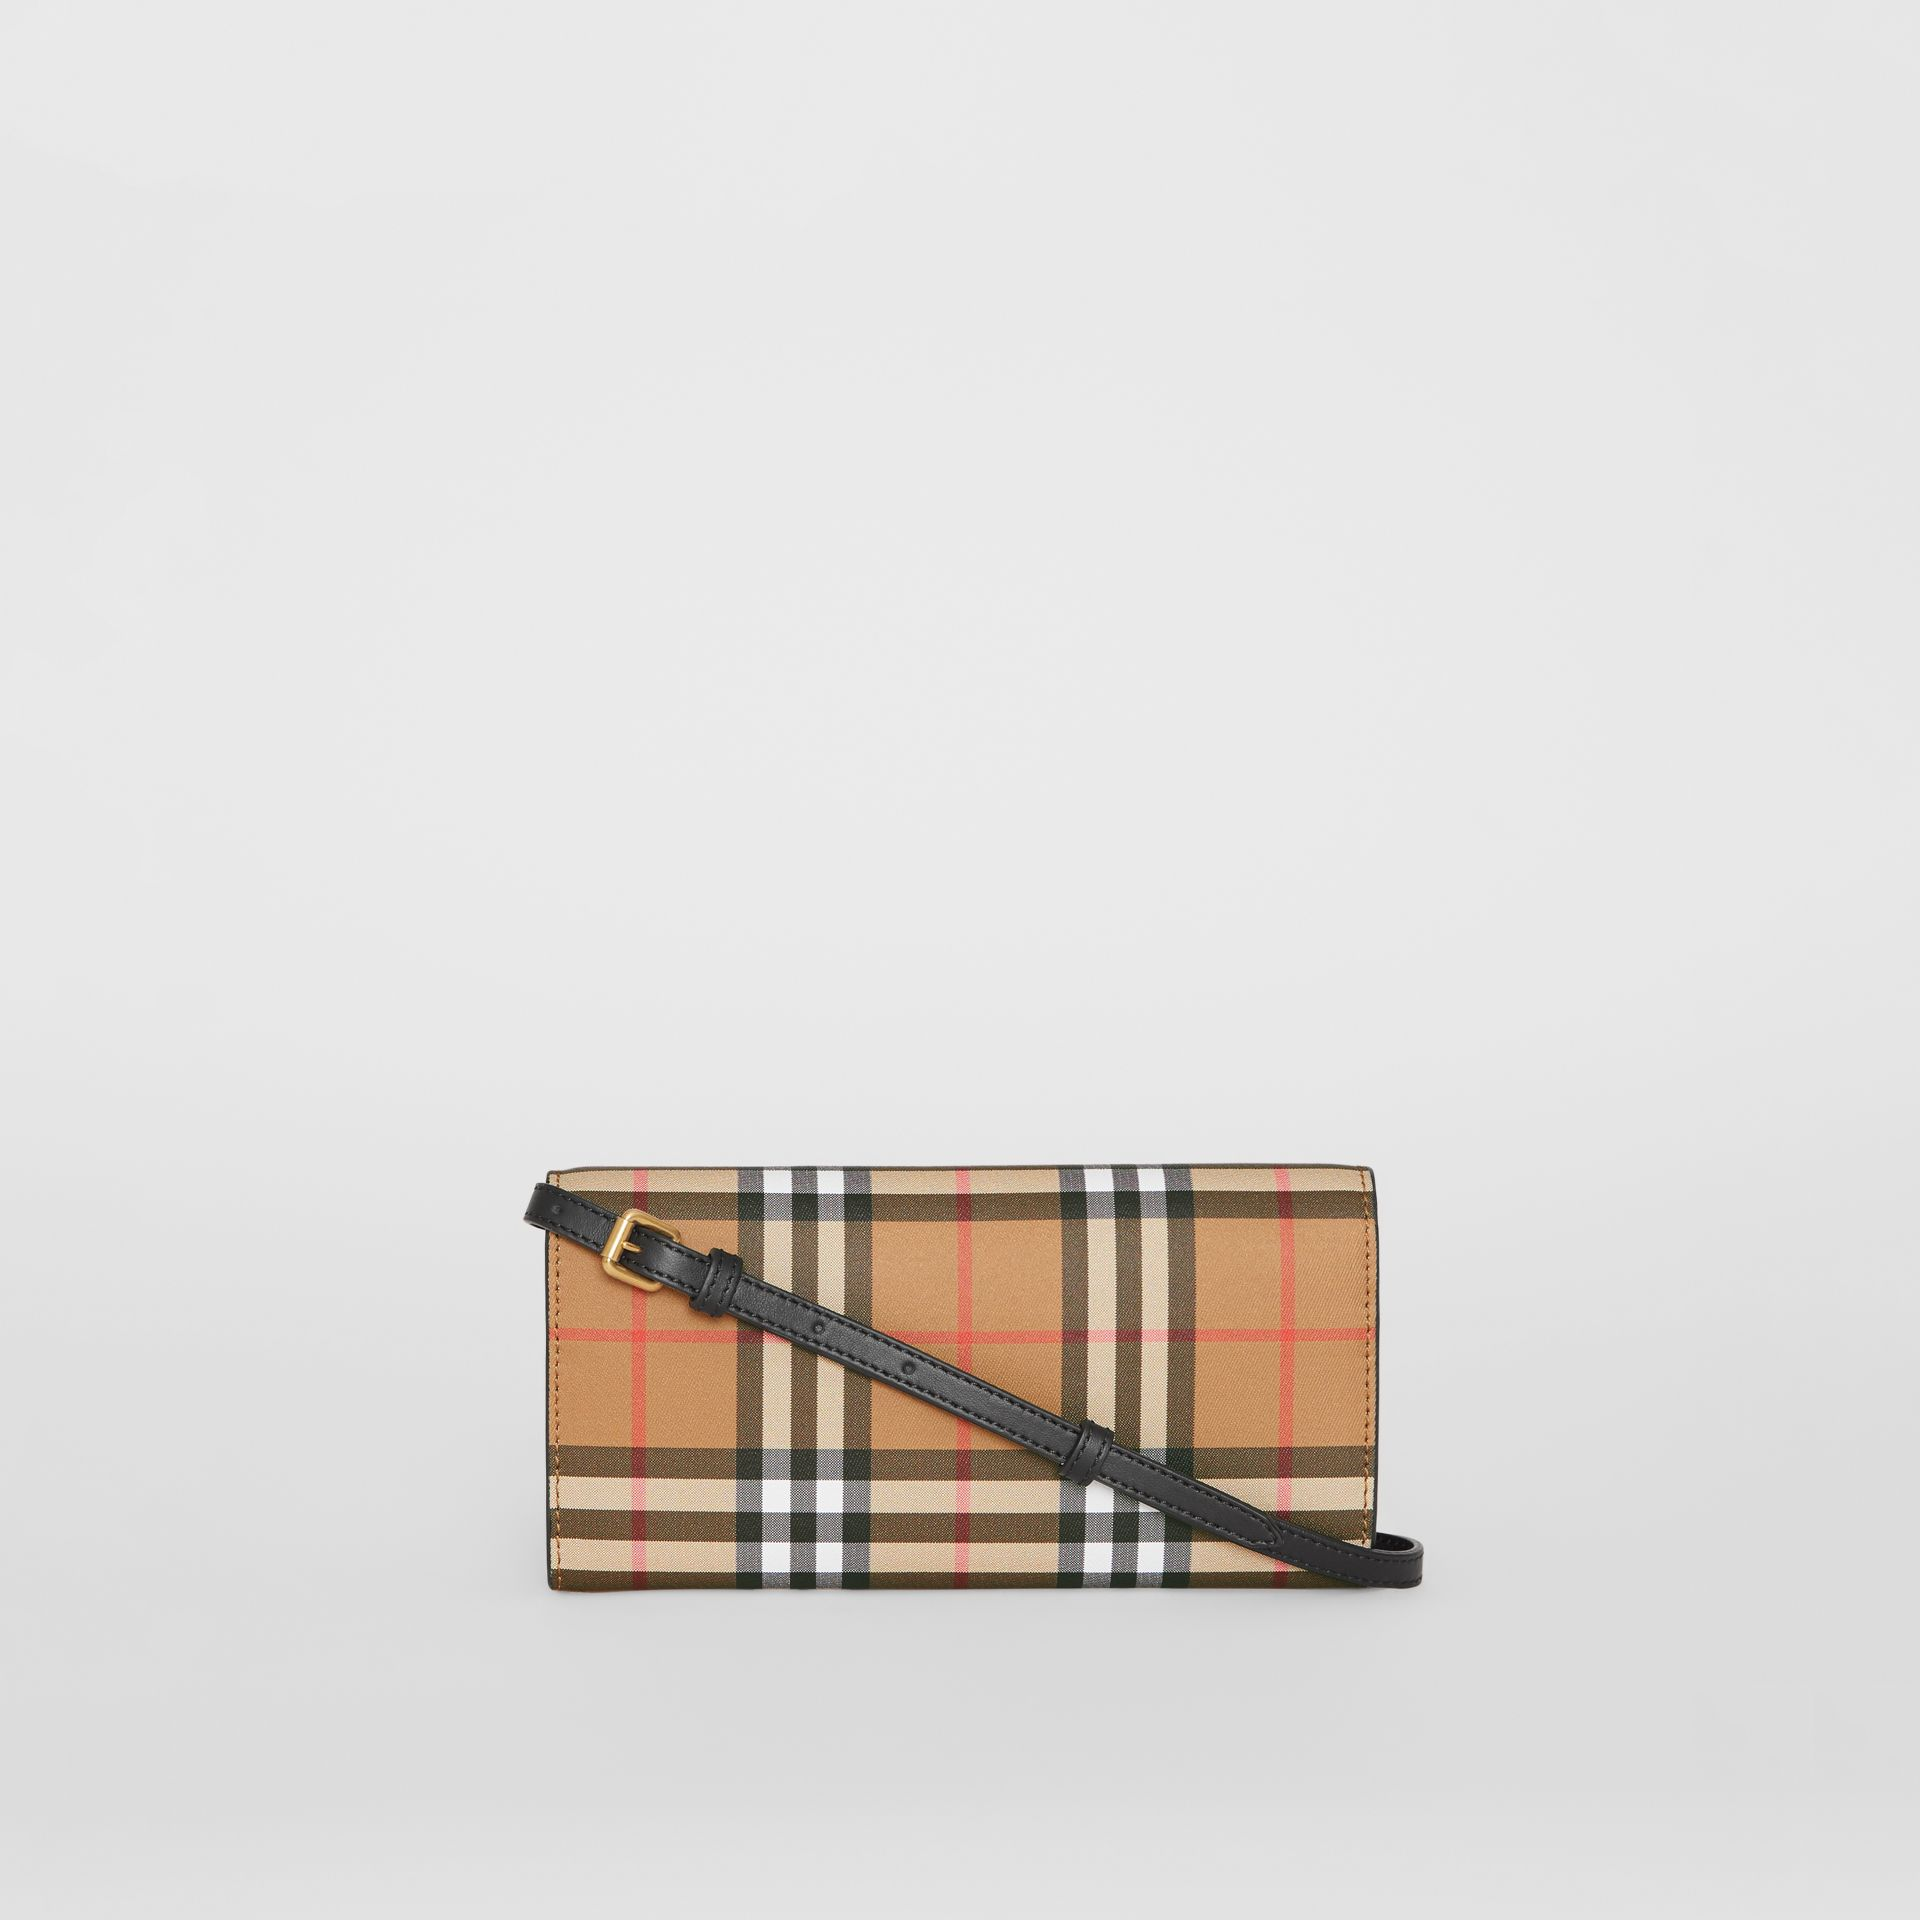 Detachable Strap Vintage Check Leather Wallet in Black - Women | Burberry United States - gallery image 7